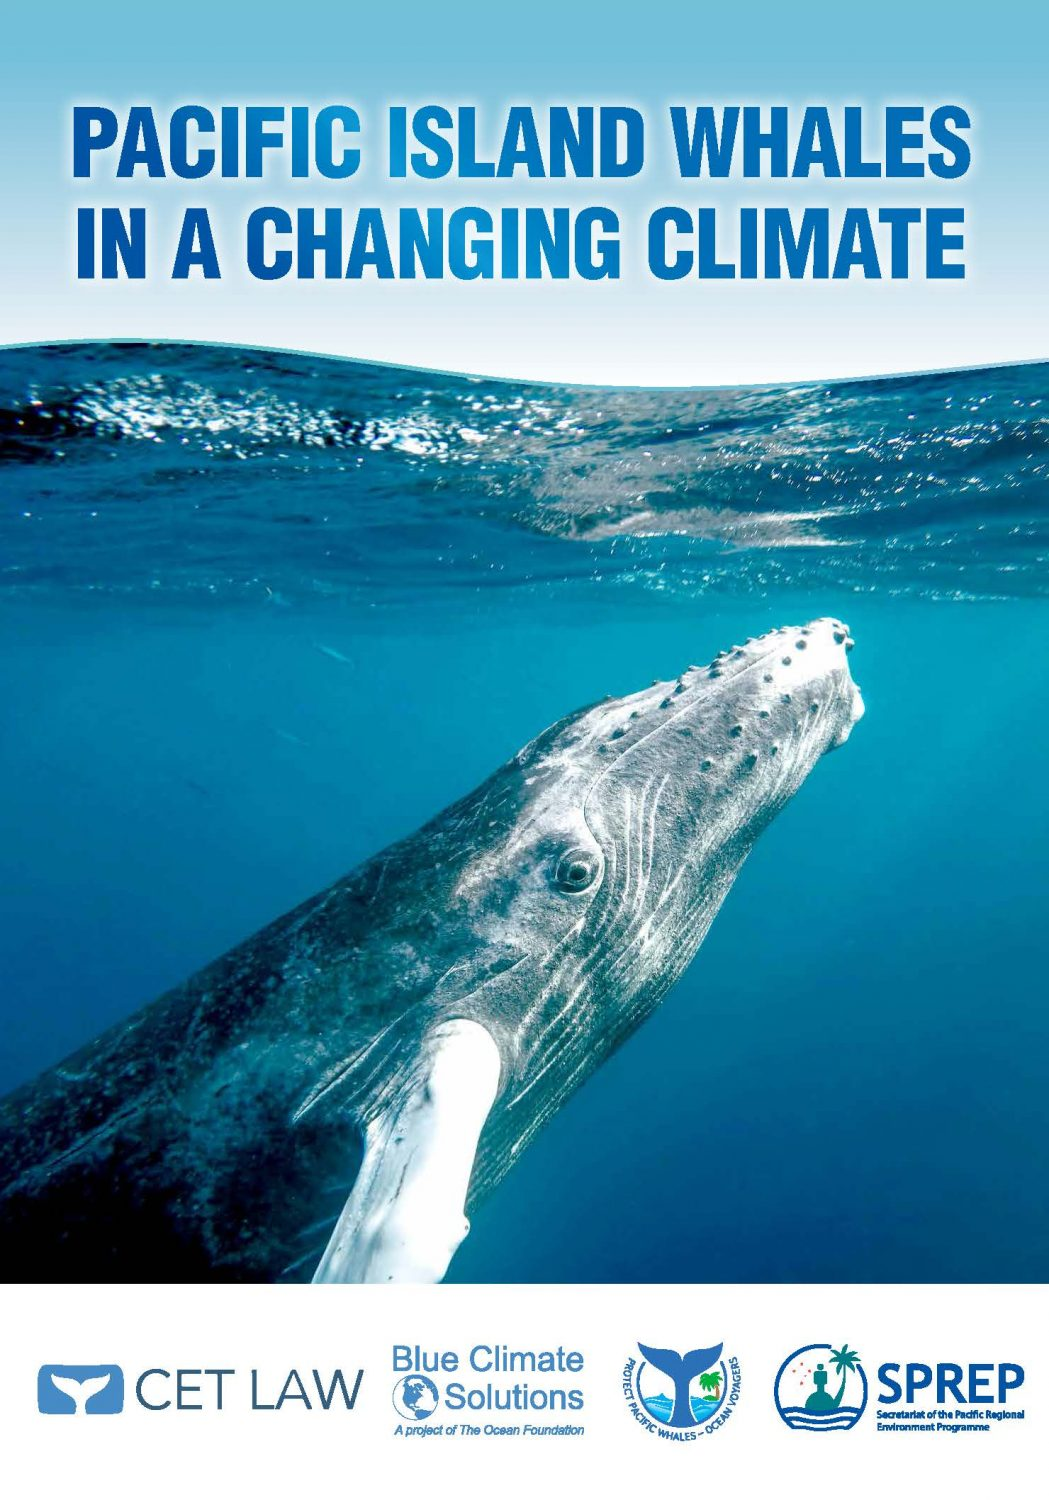 Pacific Island Whales in a Changing Climate